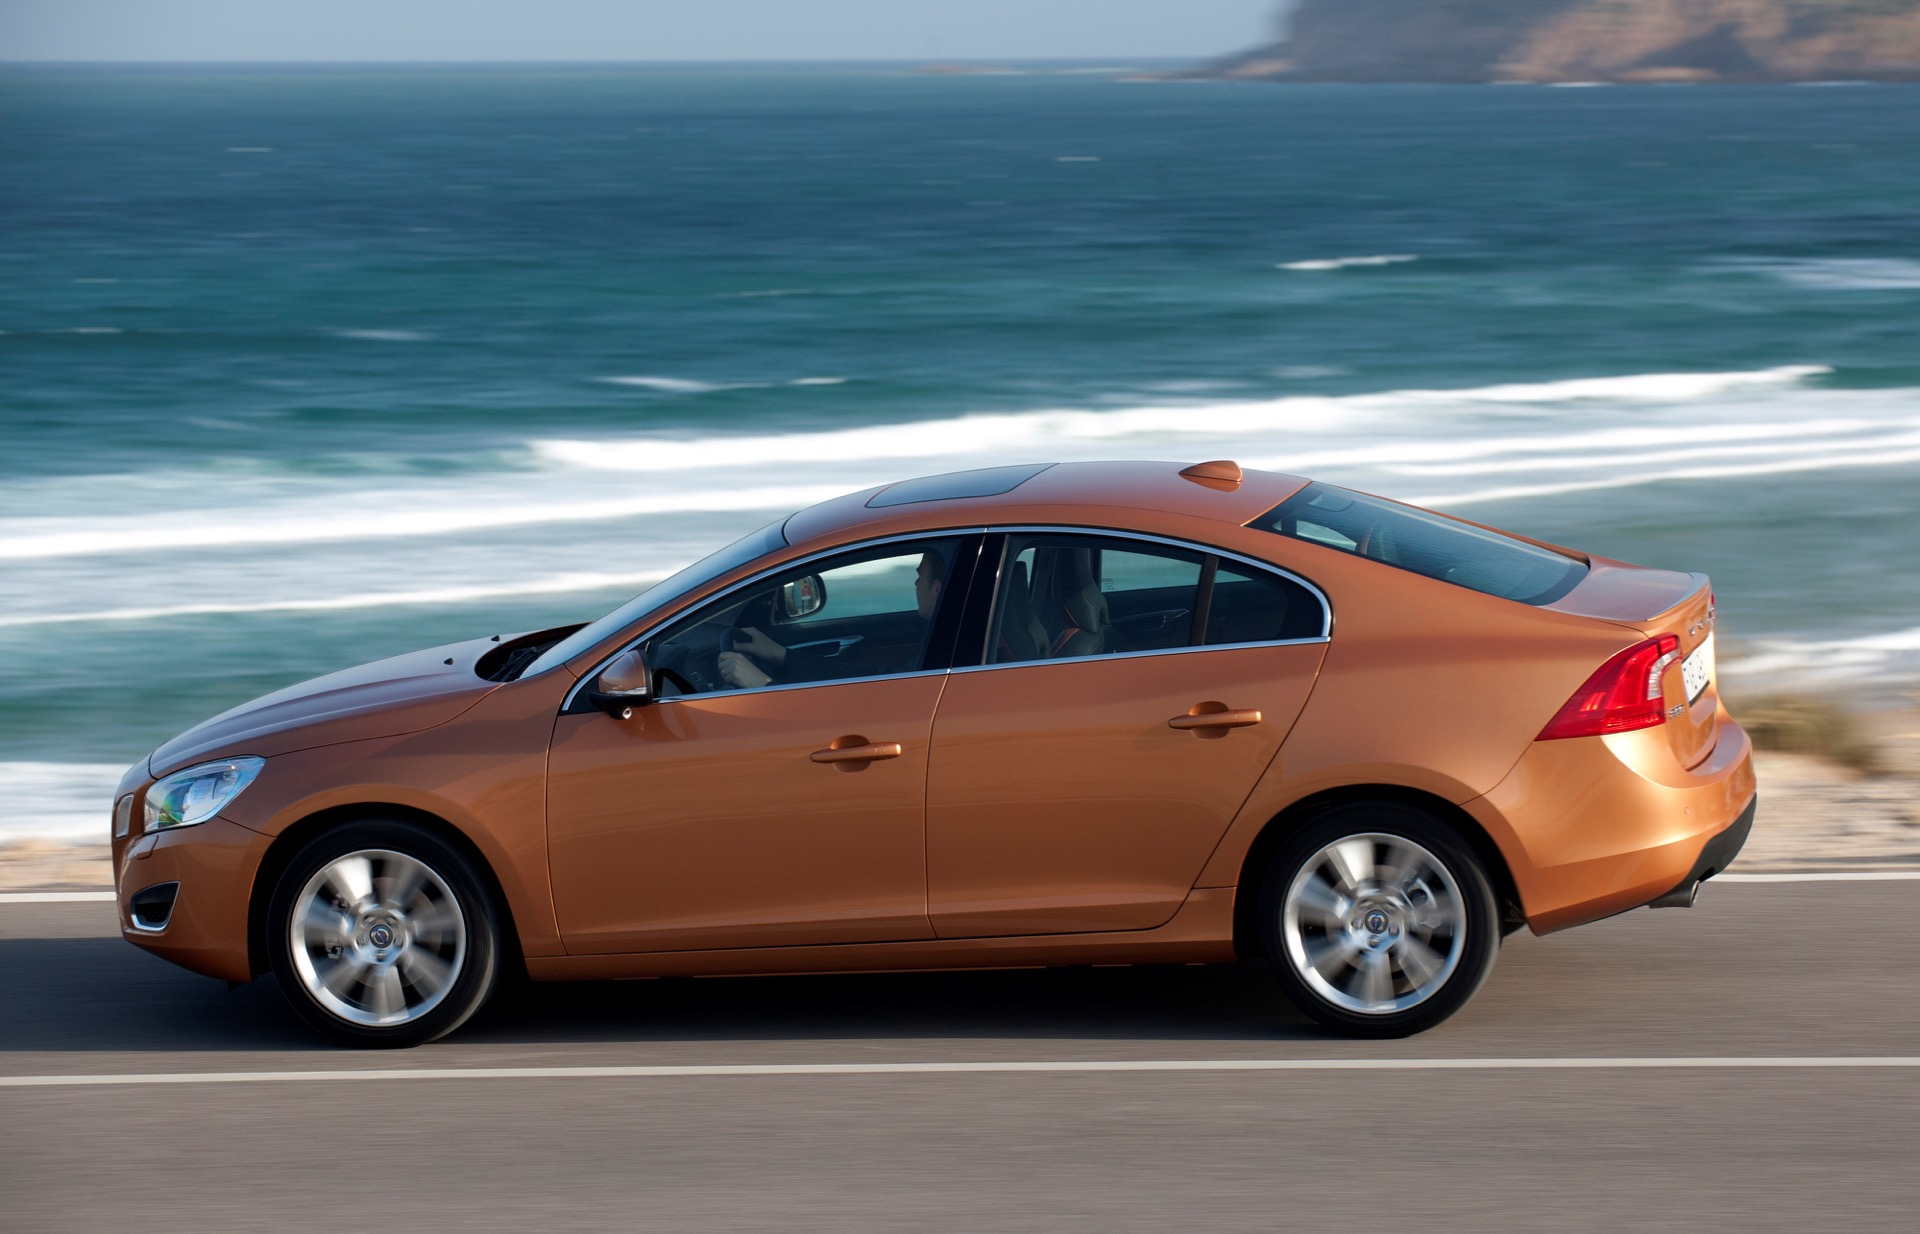 The All New Volvo S60 On The Road In The Region Of Sintra Portugal05 -  Volvo